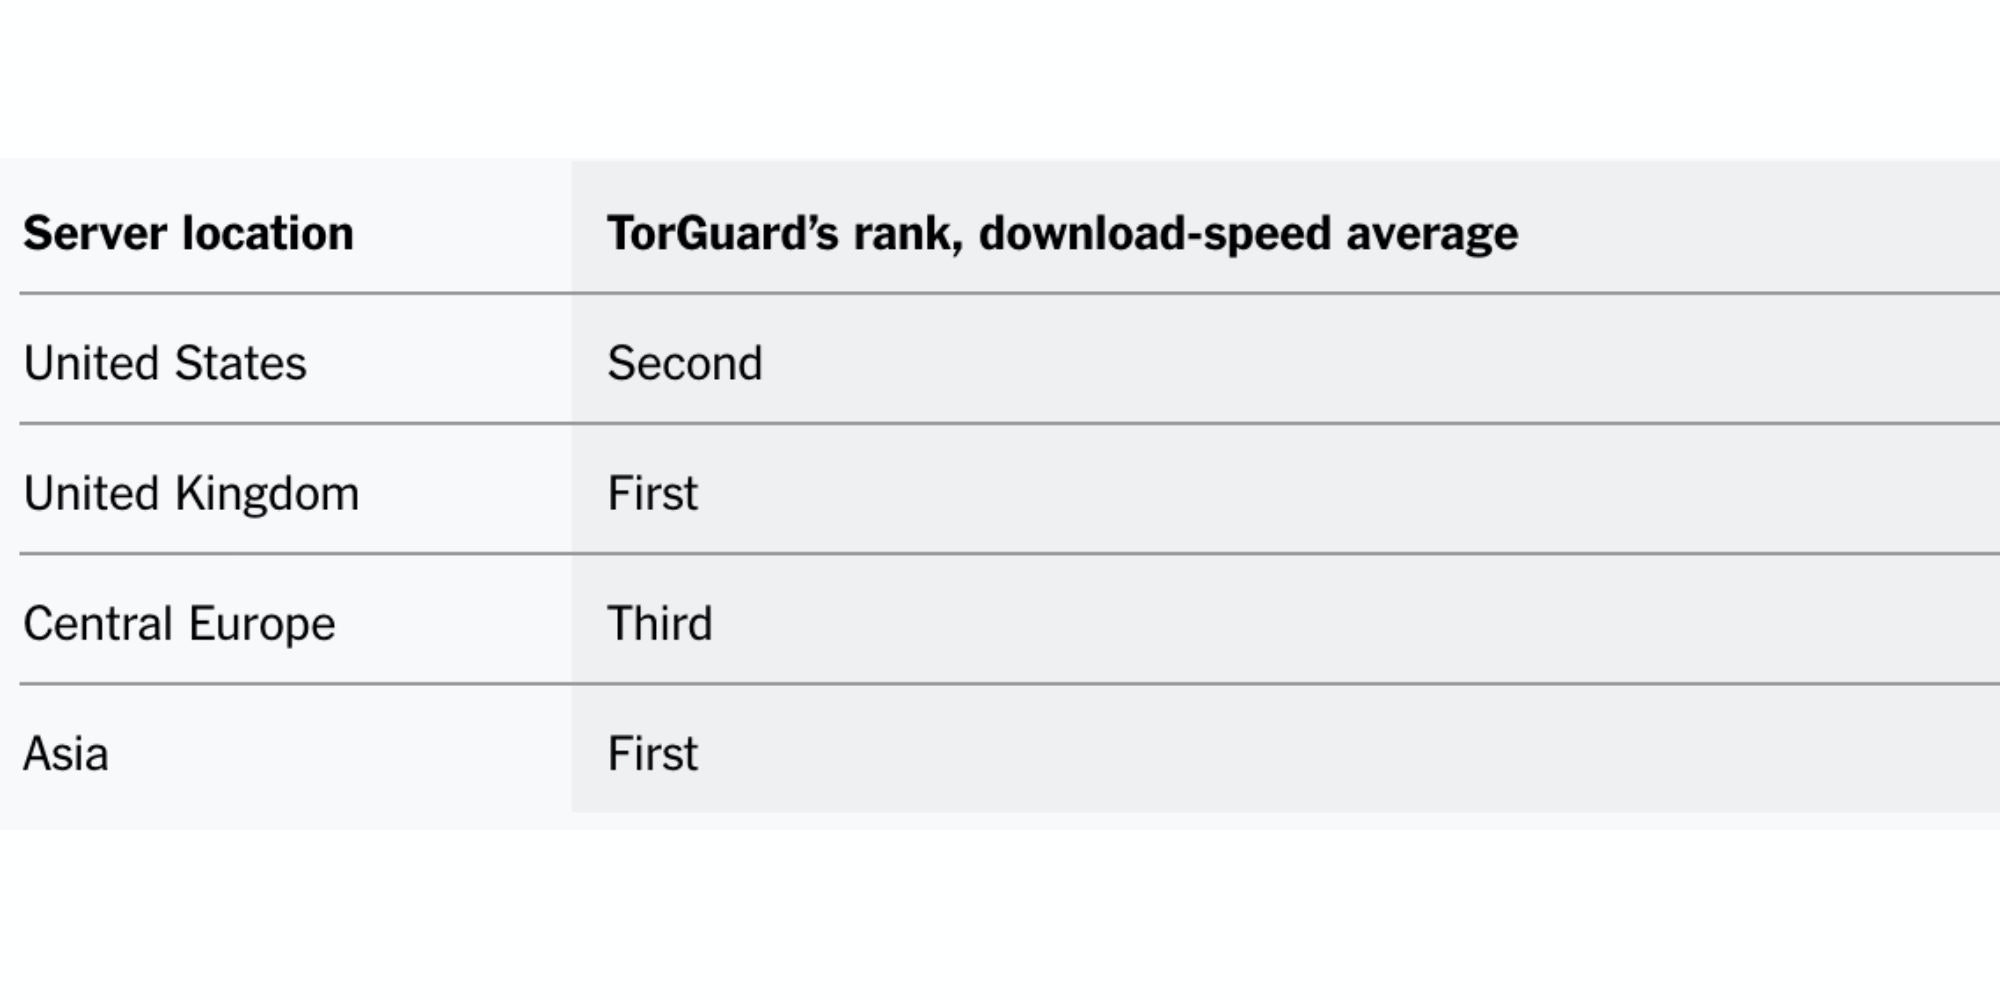 TorGuard was consistently one of the fastest services we tested, regardless of what part of the world we connected through. These rankings are based on the average download-speed results from Internet Health Test, performed at three different times.